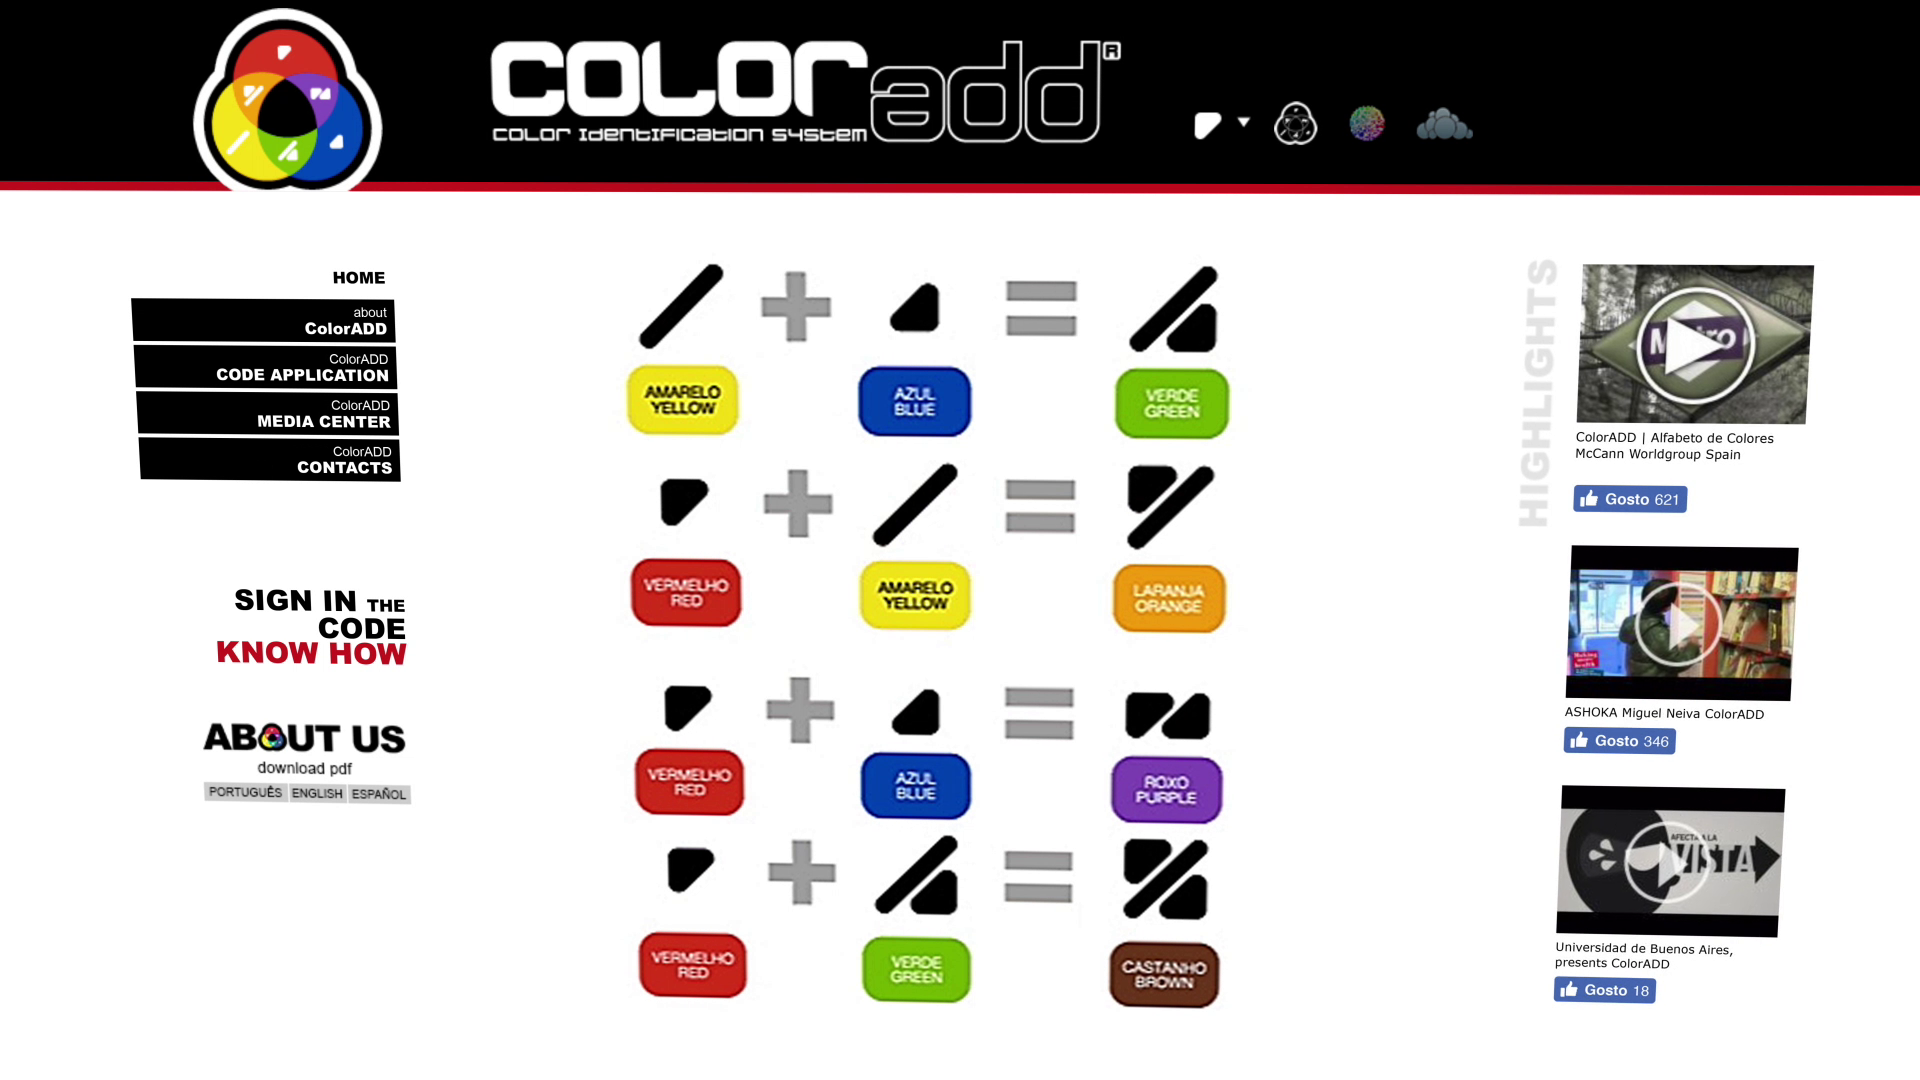 Thumbnail for The Color of Inclusion